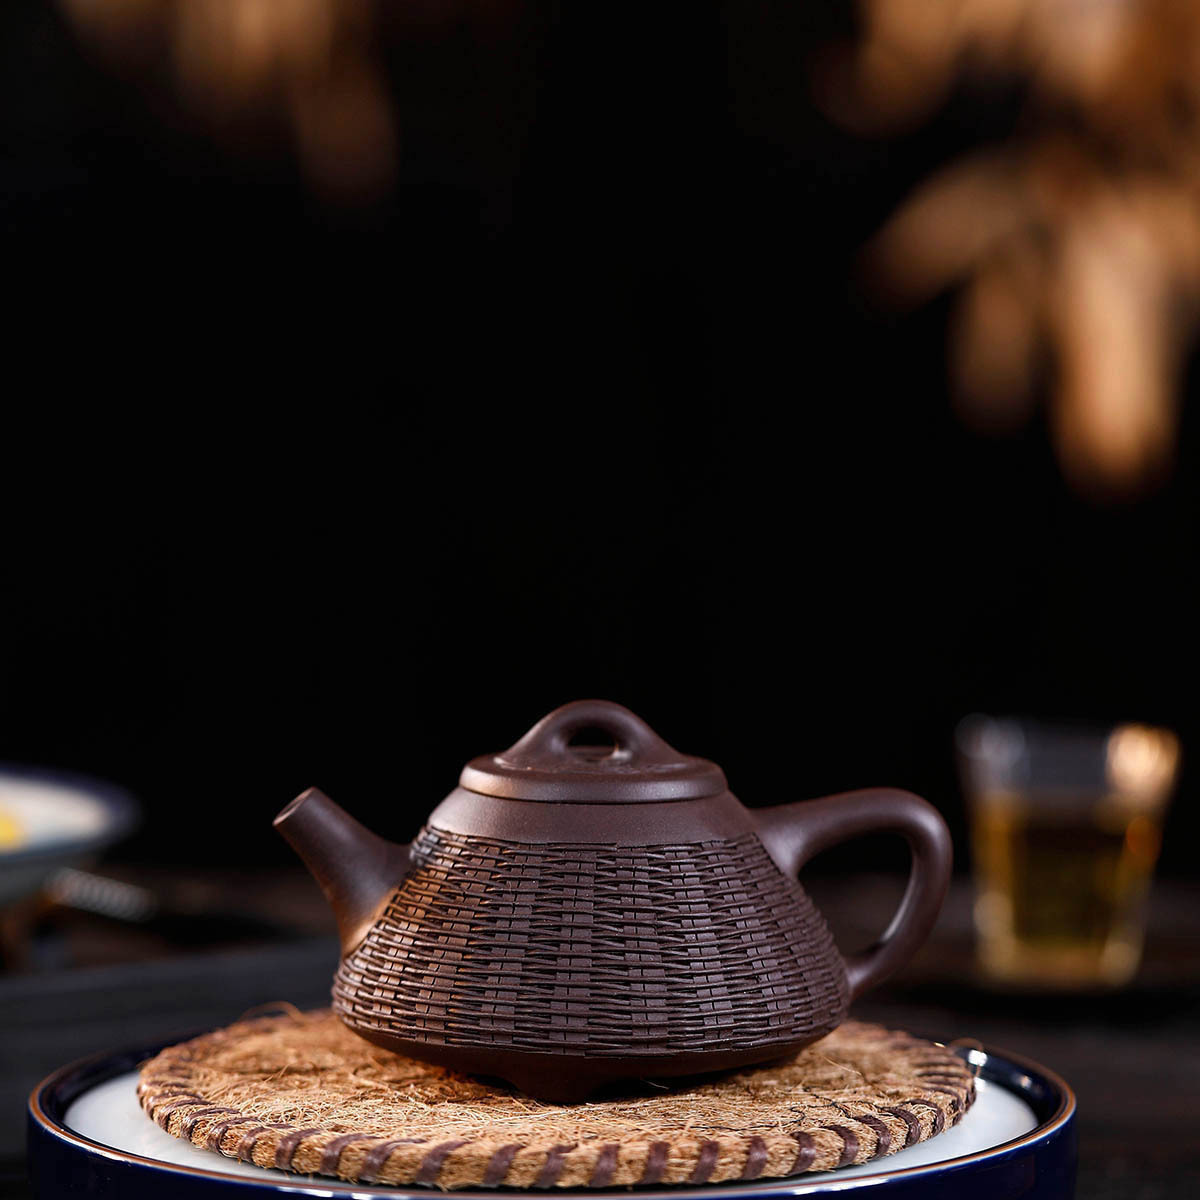 Teapot Full Manual Raw Ore Purple Ink For Imprinting Of Seals Bamboo Weaving You Stone Pot Kungfu Online Teapot Tea Set SuitTeapot Full Manual Raw Ore Purple Ink For Imprinting Of Seals Bamboo Weaving You Stone Pot Kungfu Online Teapot Tea Set Suit